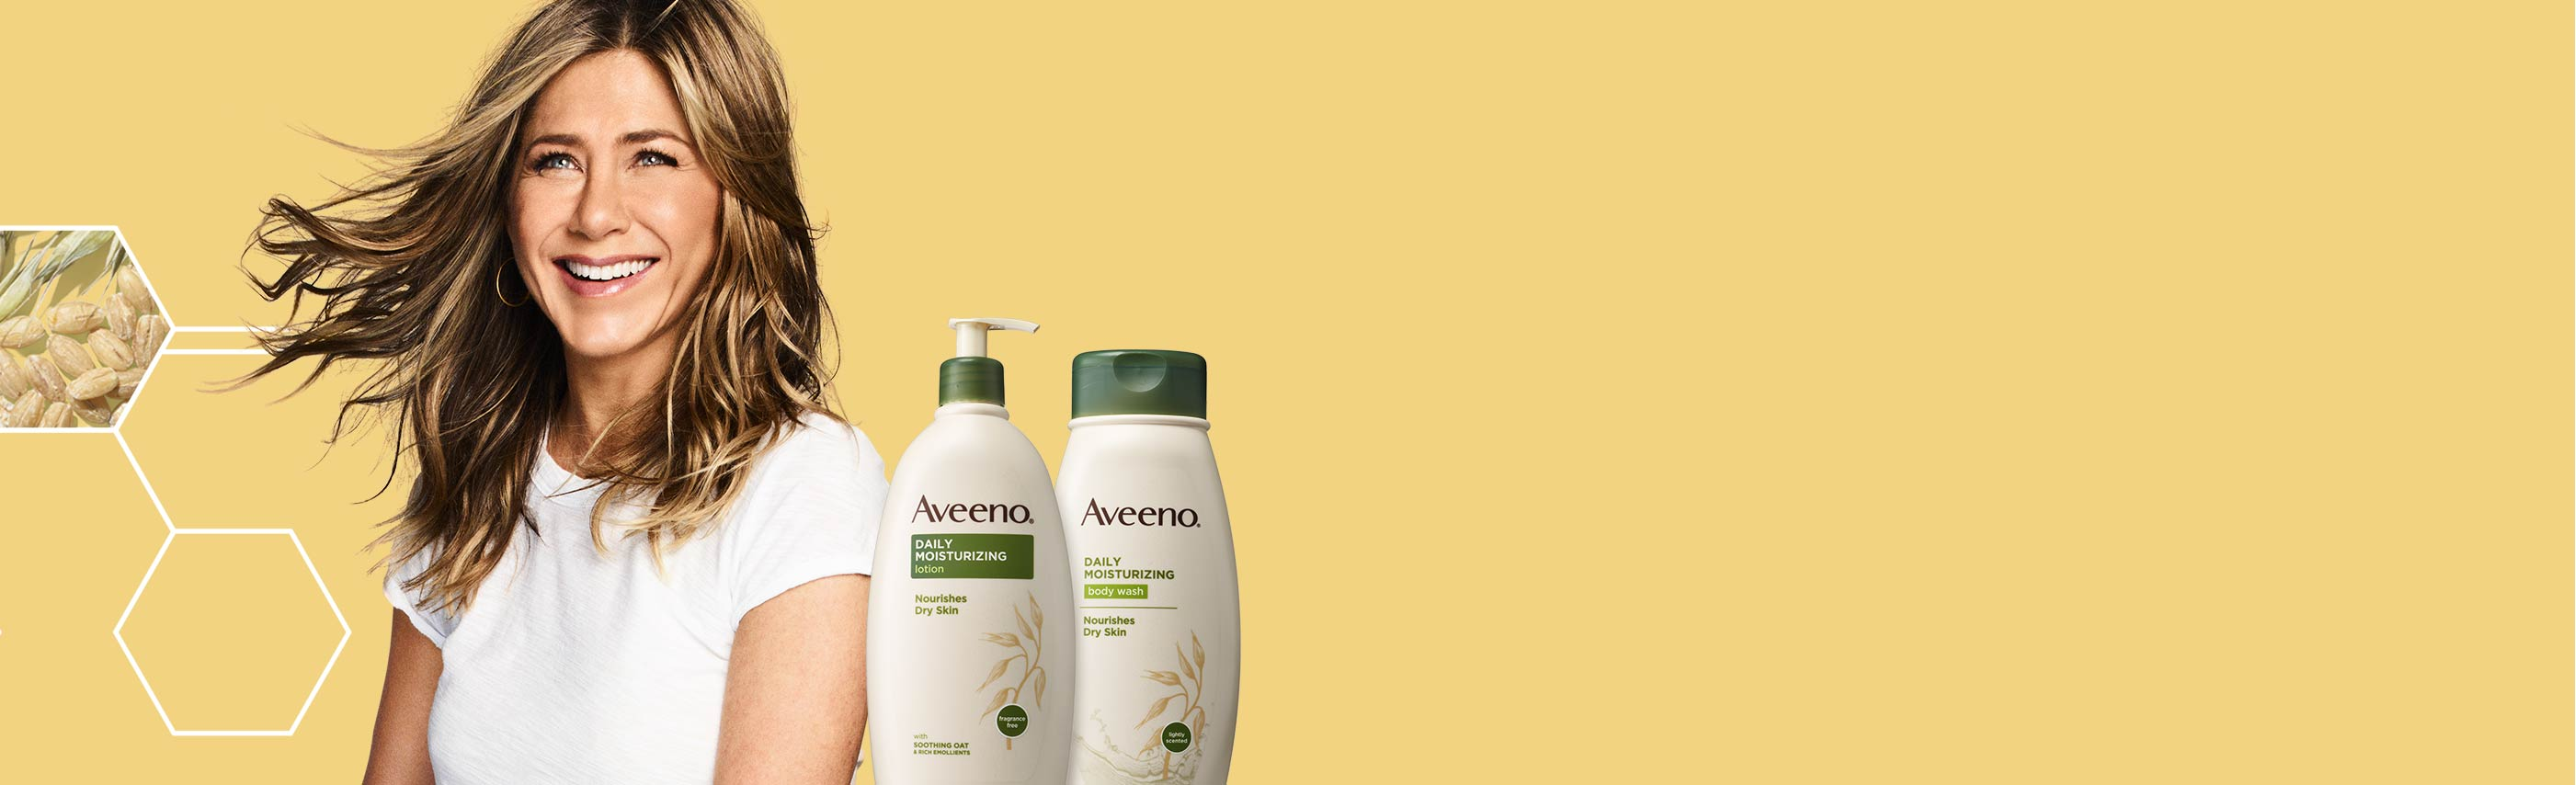 Get AVEENO® Skin Happy With Skincare & Hair Care Products